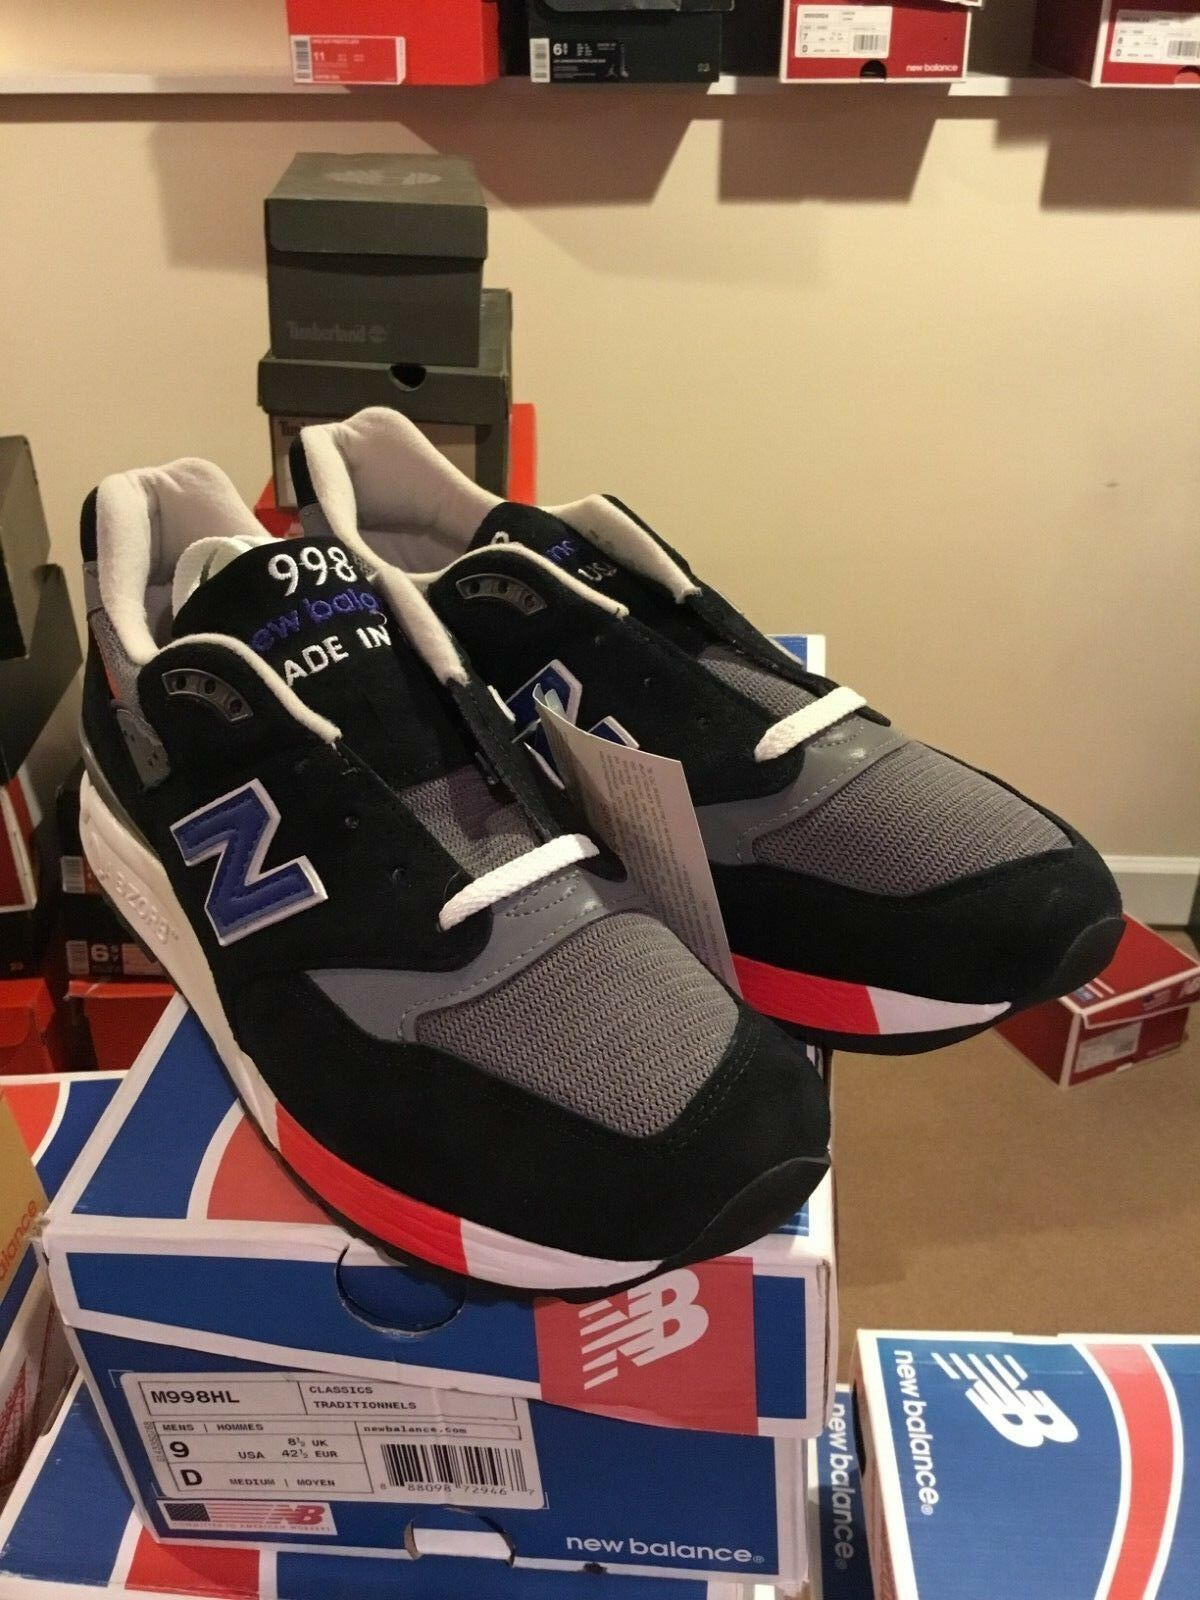 SALE NEW BALANCE 998 M998 M998HL MADE IN USA Größe 8-9 BRAND NEW